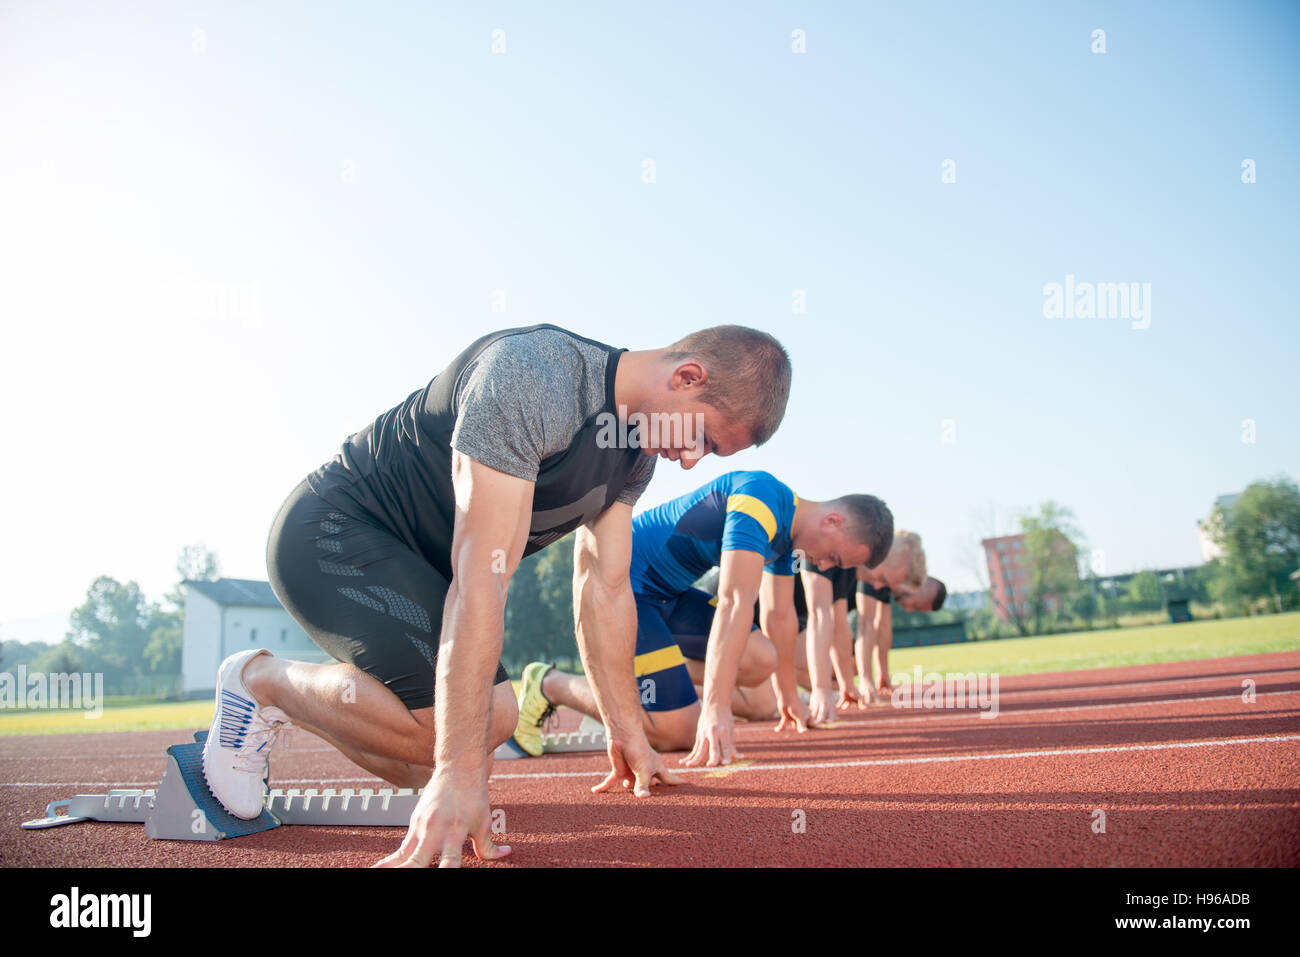 Close-up side view of cropped people ready to race on track field Stock Photo